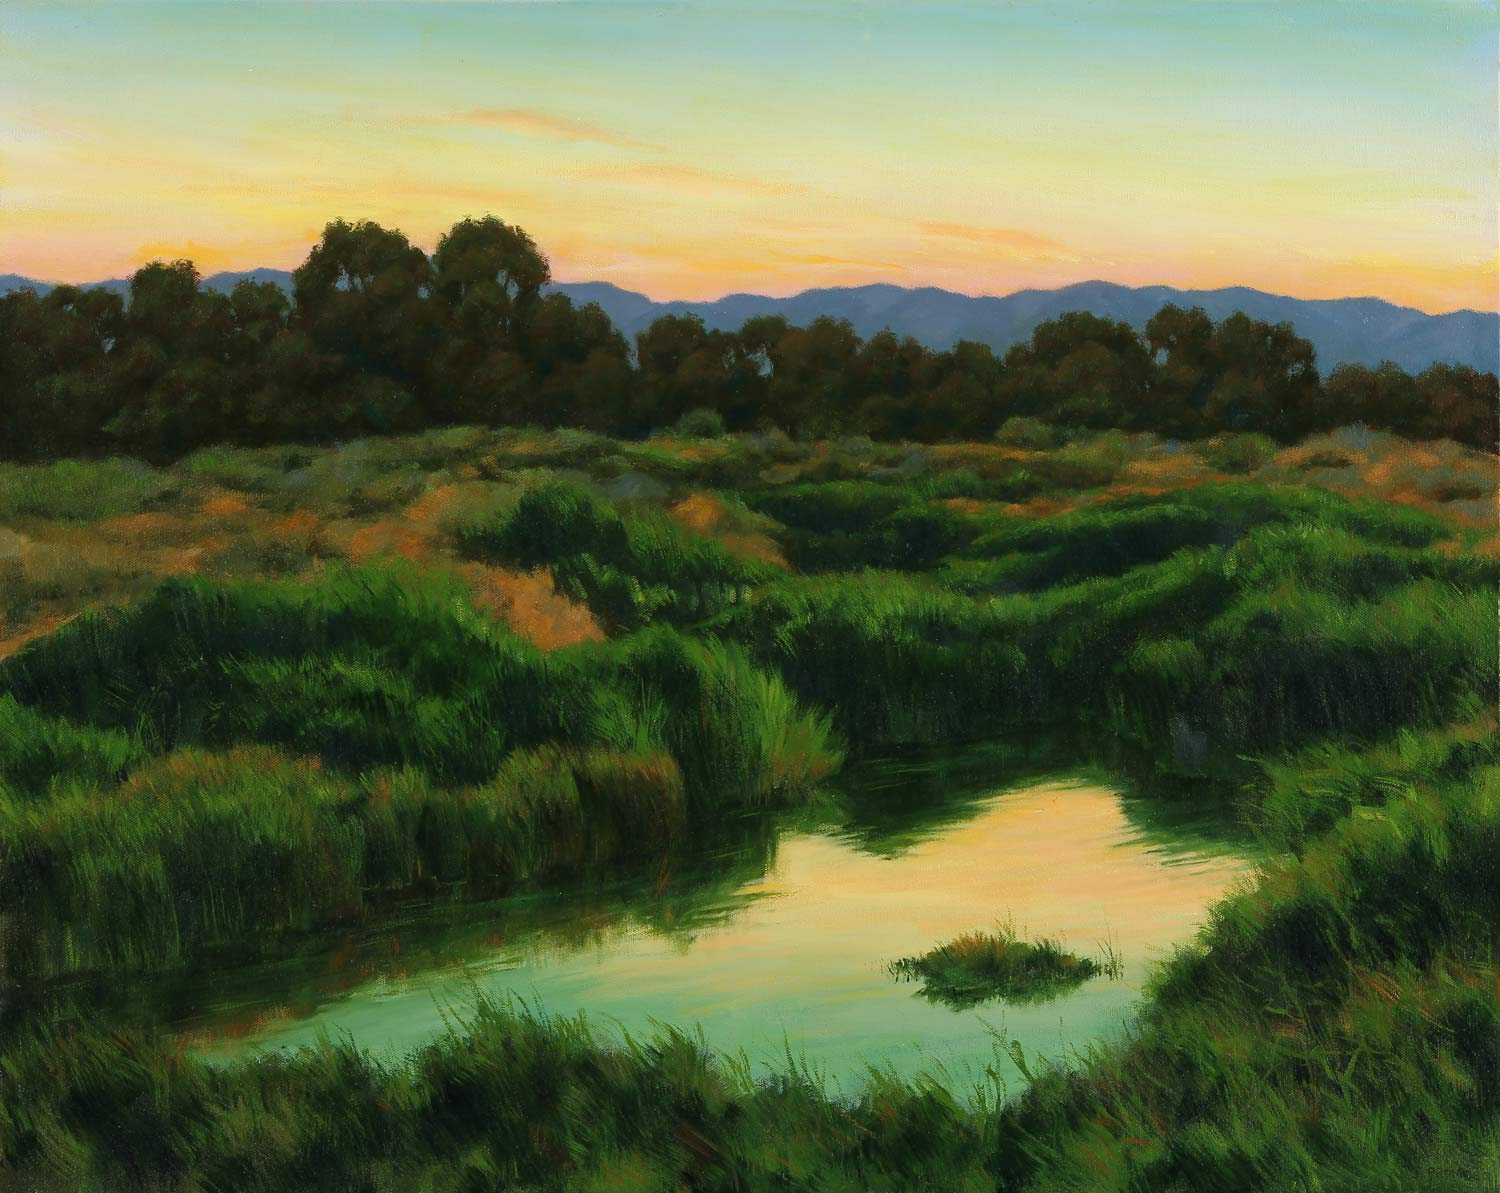 Baylands Evening Magic, landscape painting by Promessi